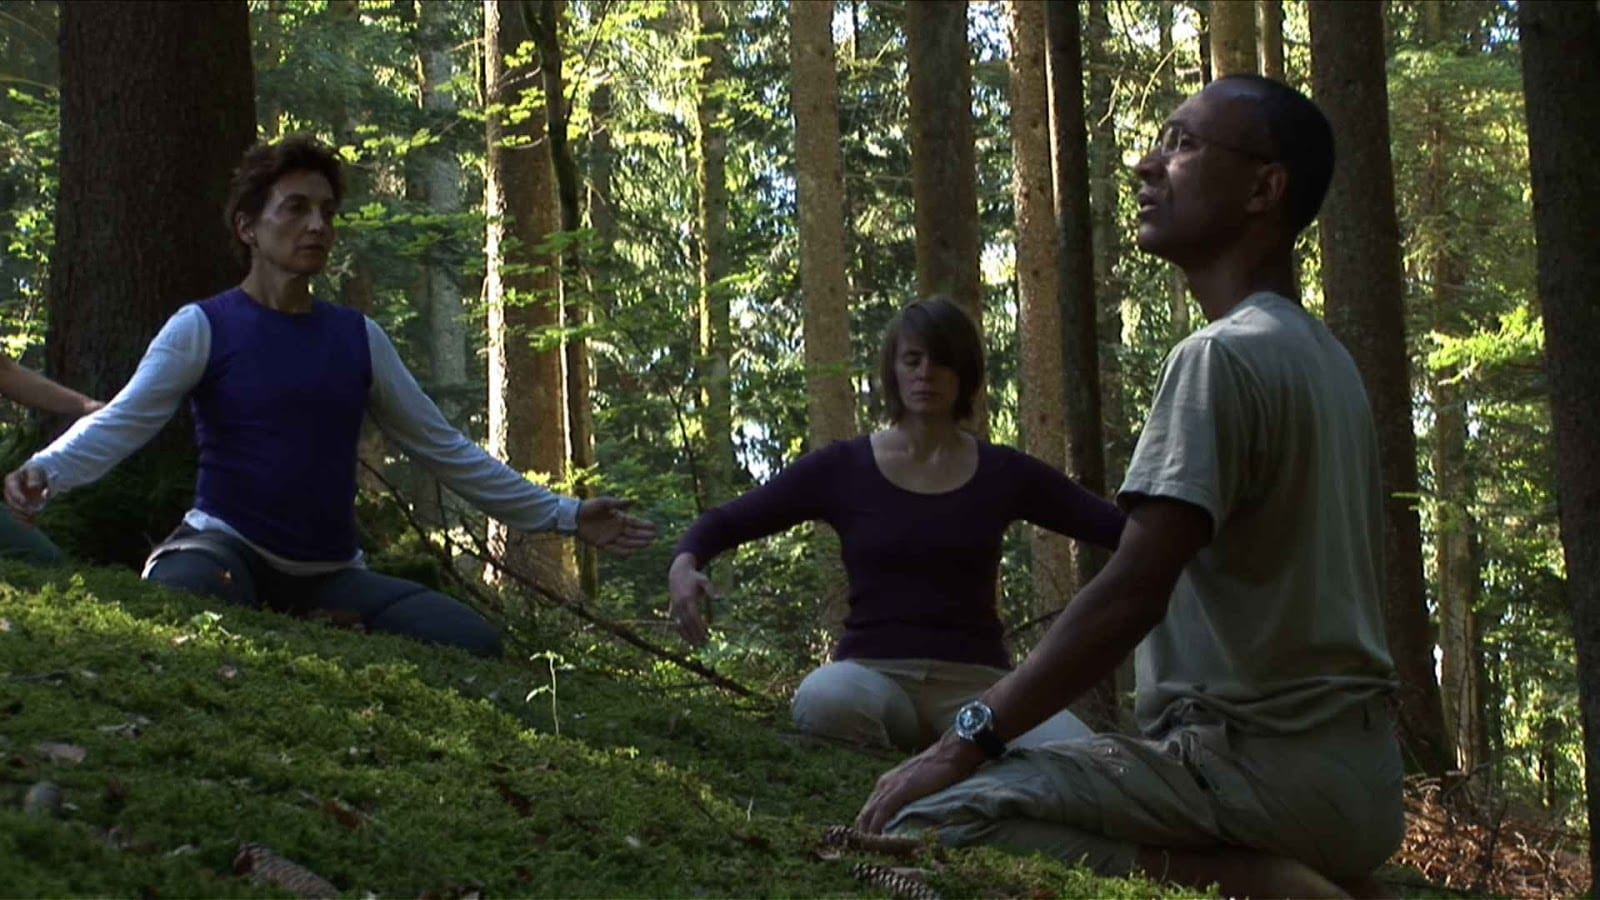 meditating in a forest